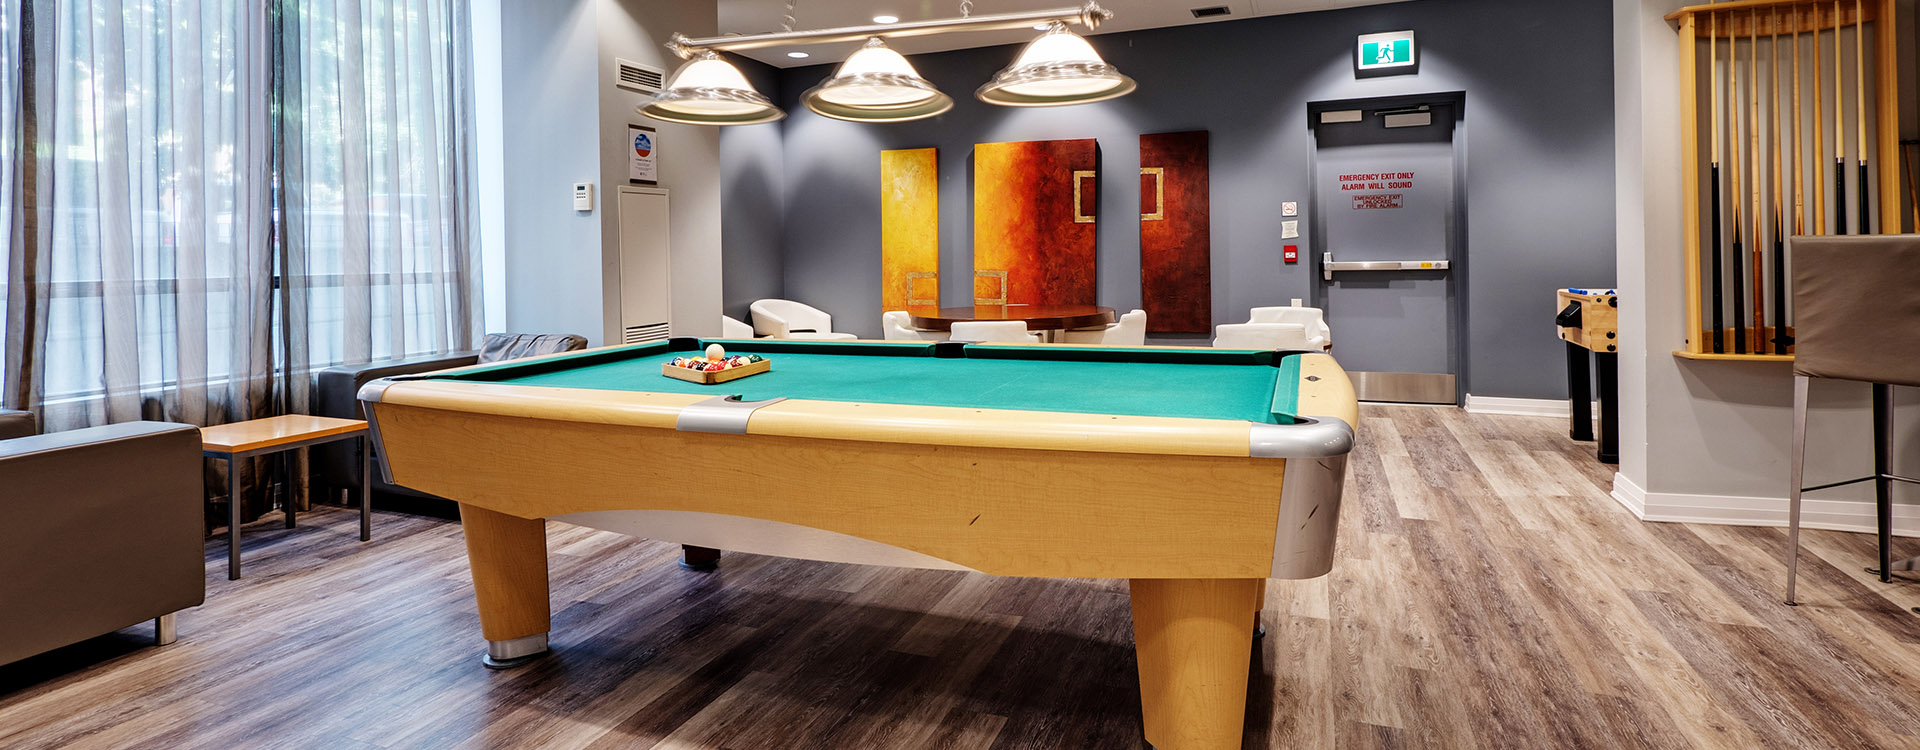 Pool room at Roehampton furnished suites in Toronto. Rent with Minto Apartments.